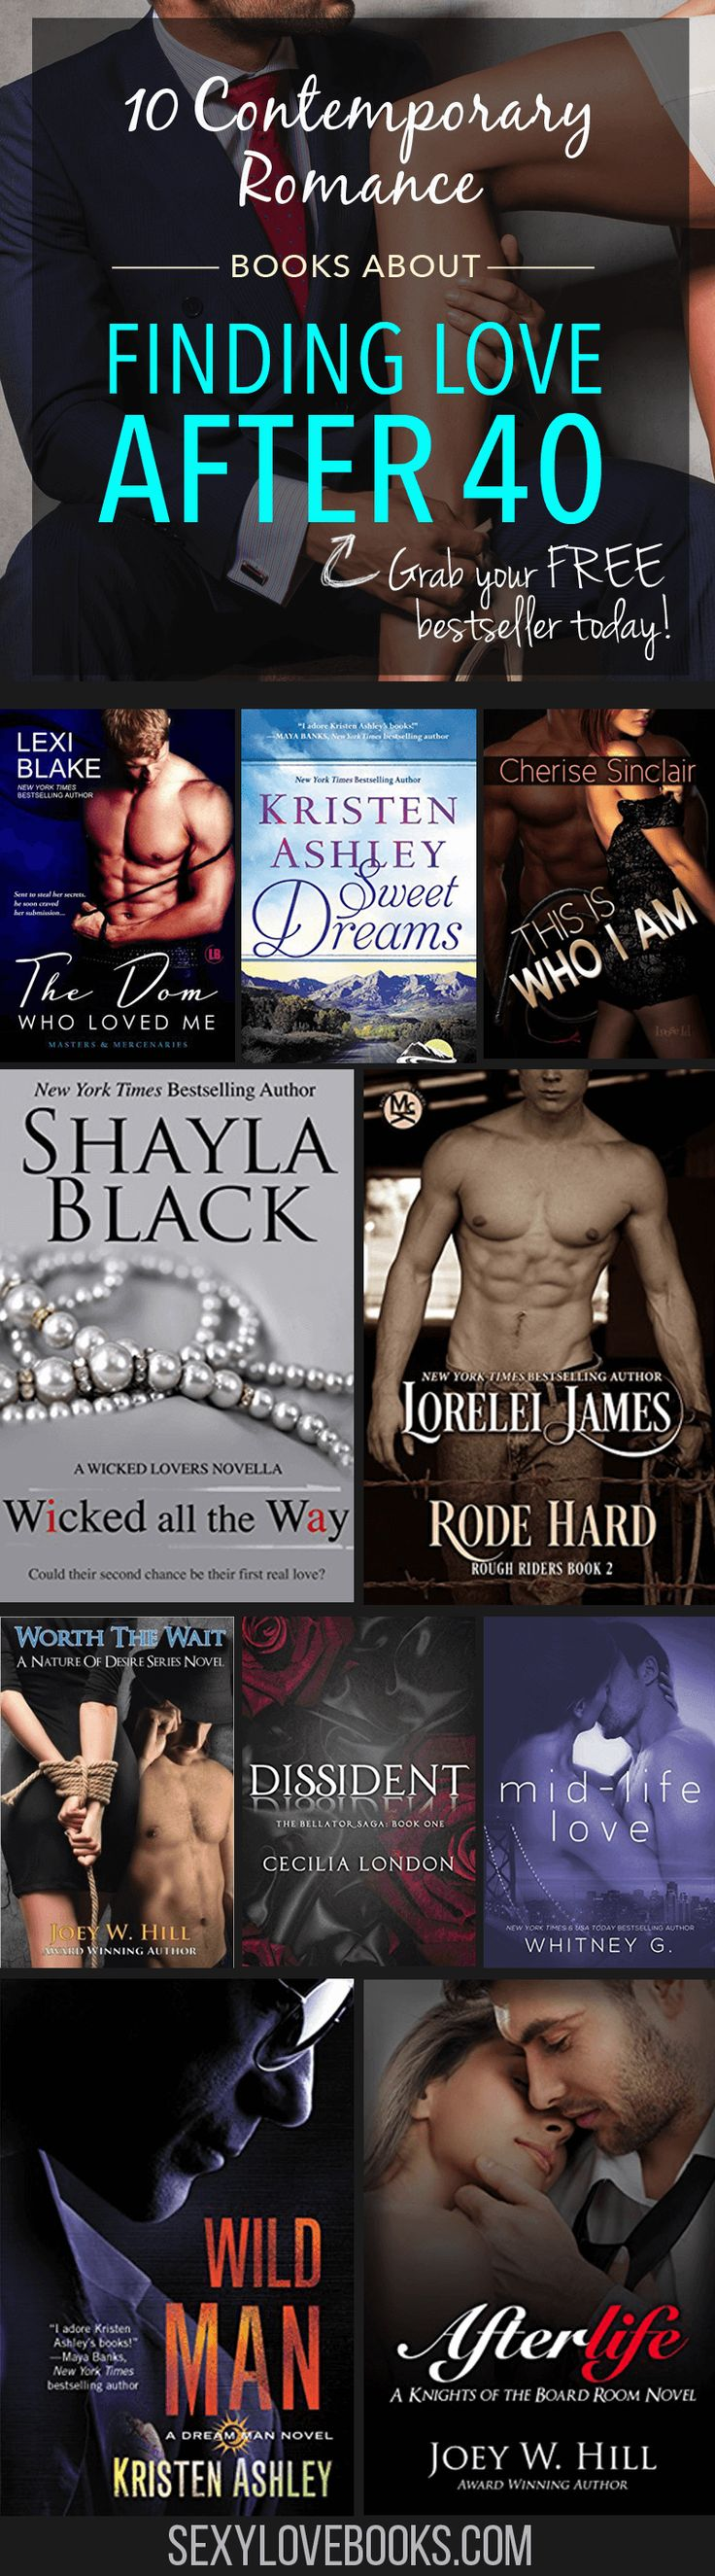 Love hot romance novels but tired of the same twenty-something characters? Add these 10 novels to your reading list ❤ Get more at www.sexylovebooks.com by @swedenreese